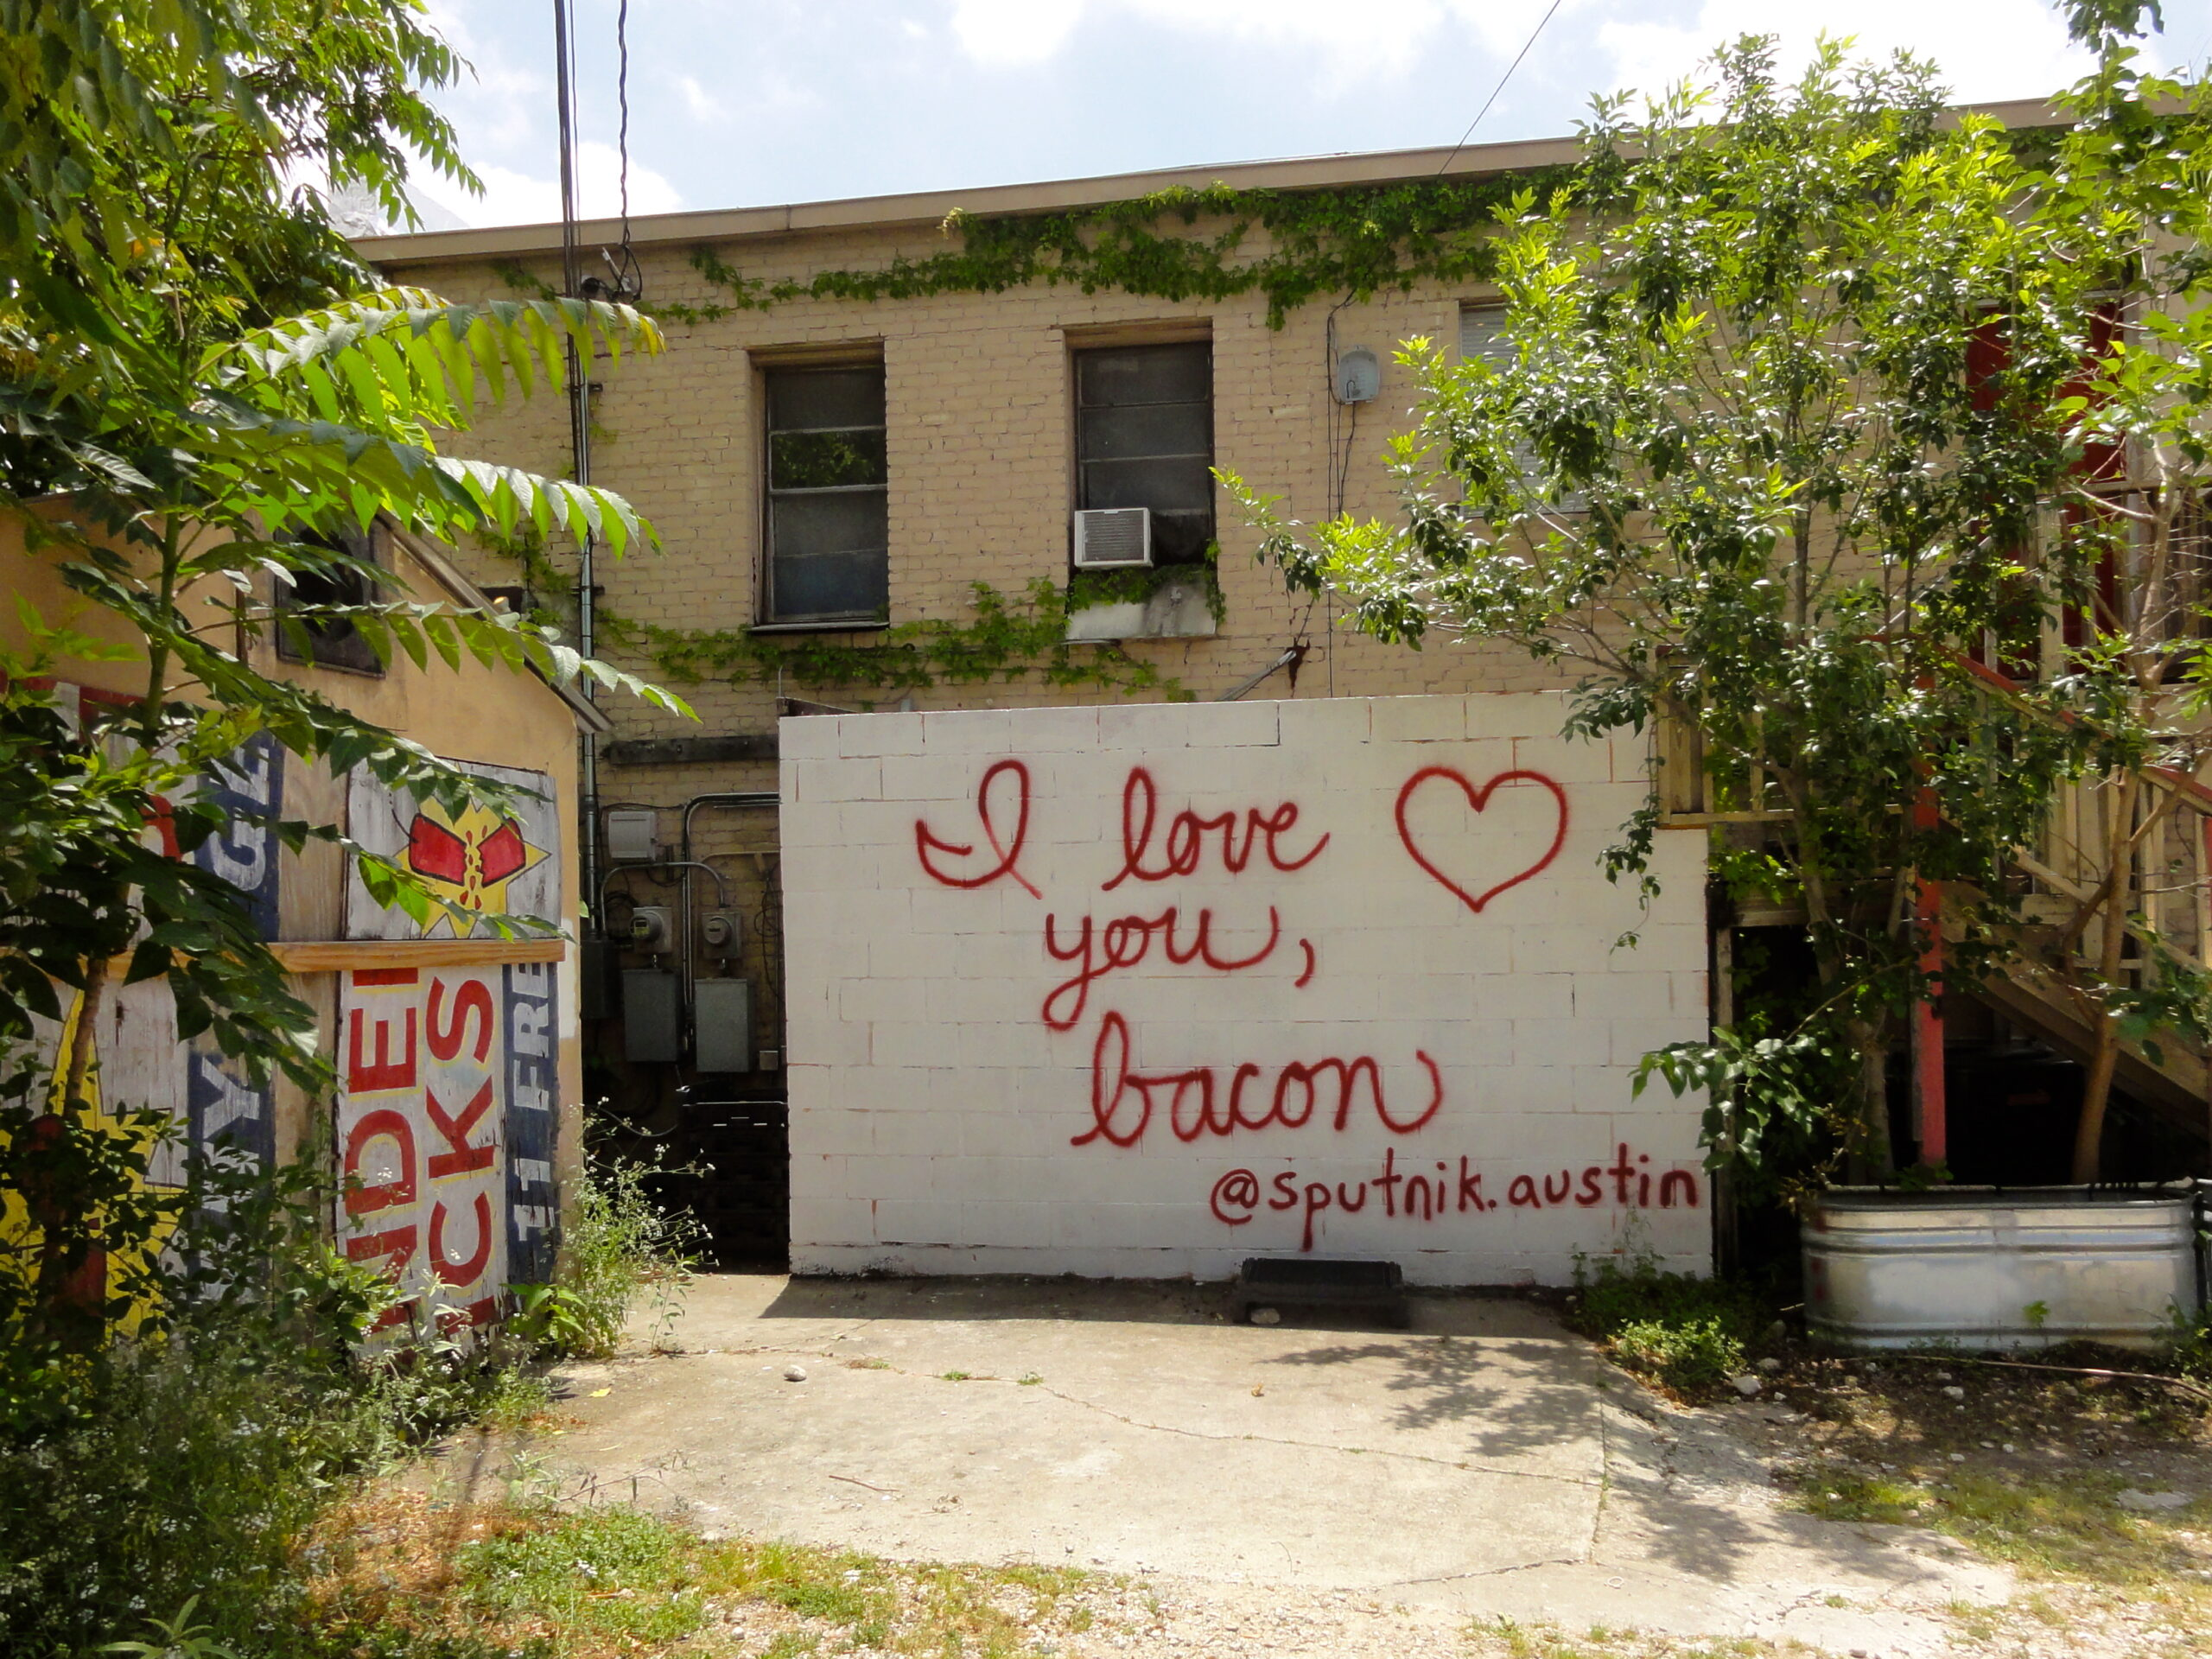 I Love You, Bacon Mural